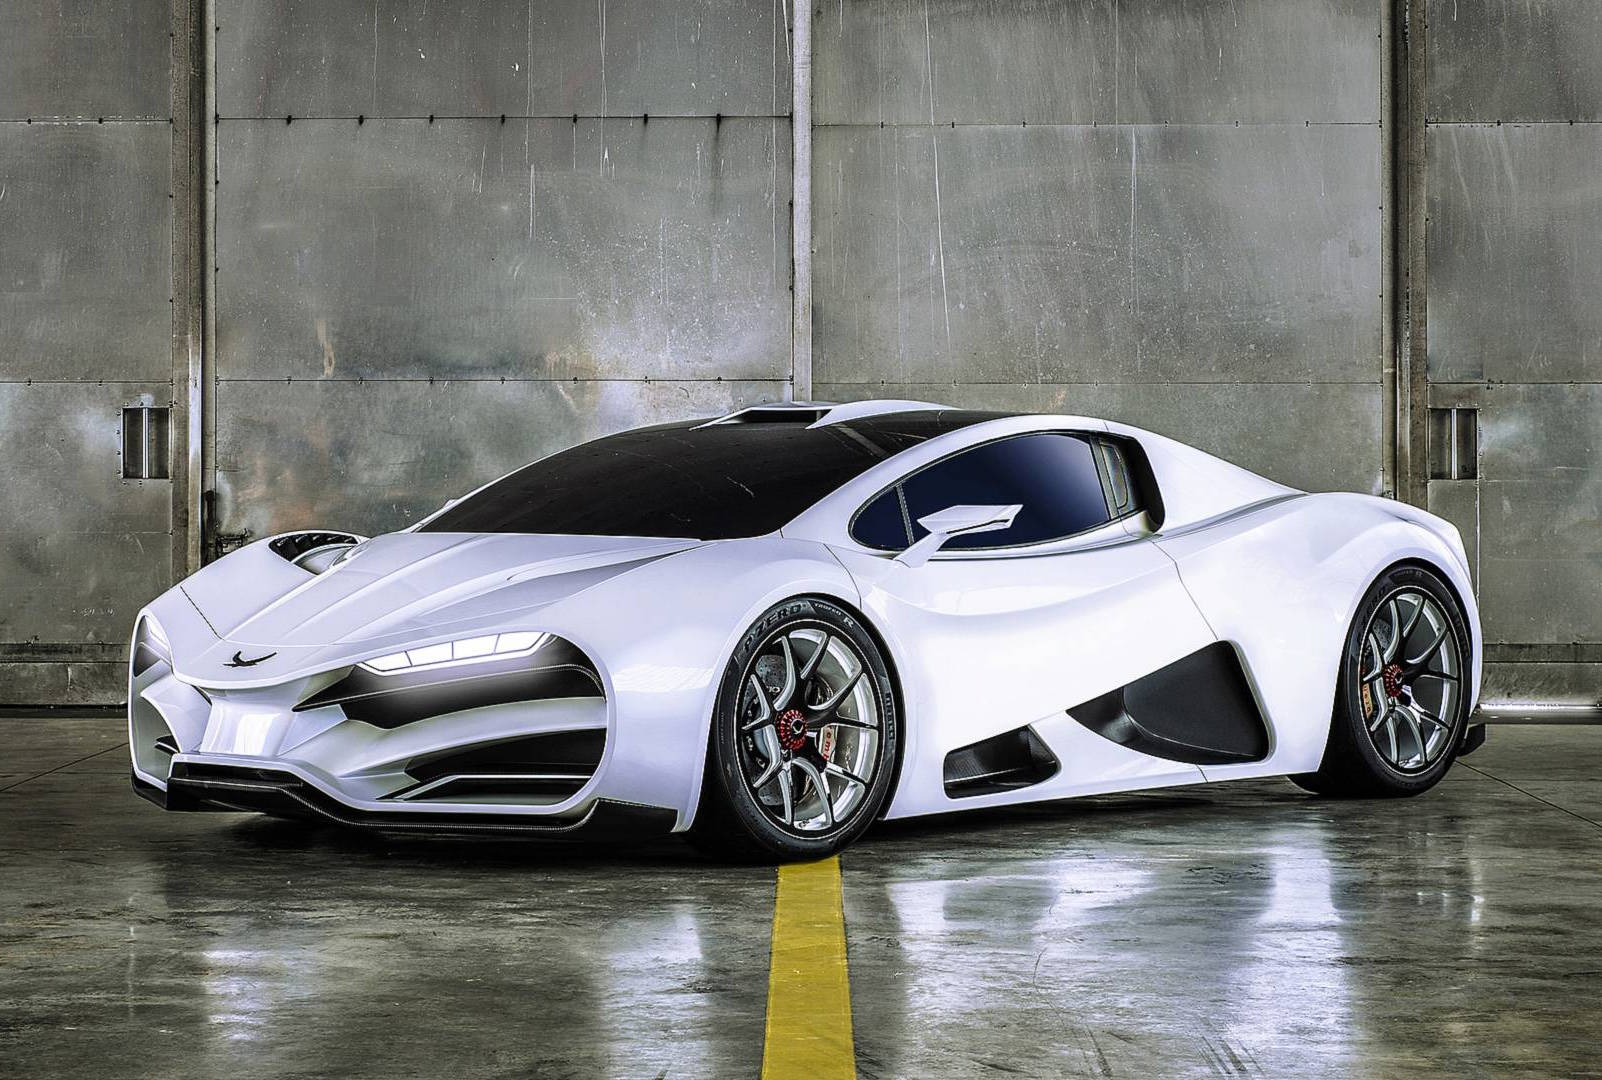 Austrian Auto Maker Milan To Launch 1 300 Hp Red Hypercar